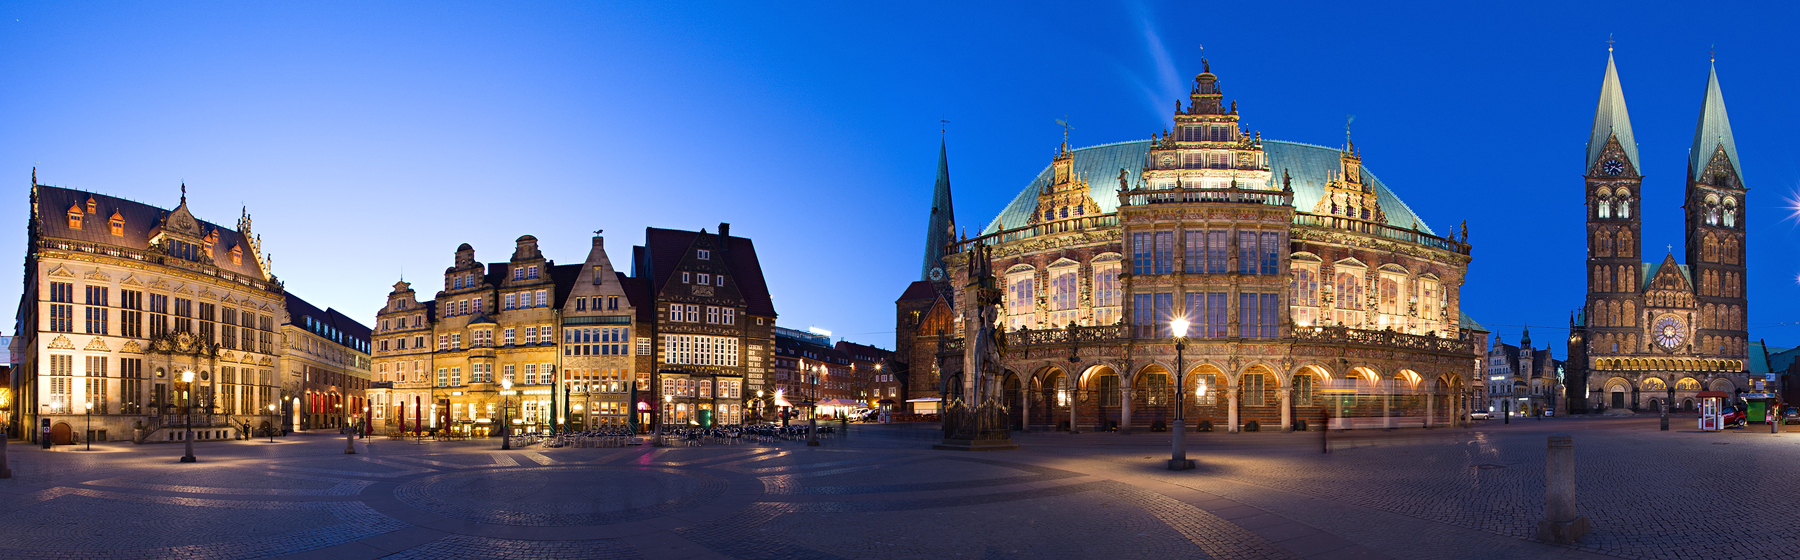 Wide angle shot of Bremen town square with the city hall (photo by Heiko.J)